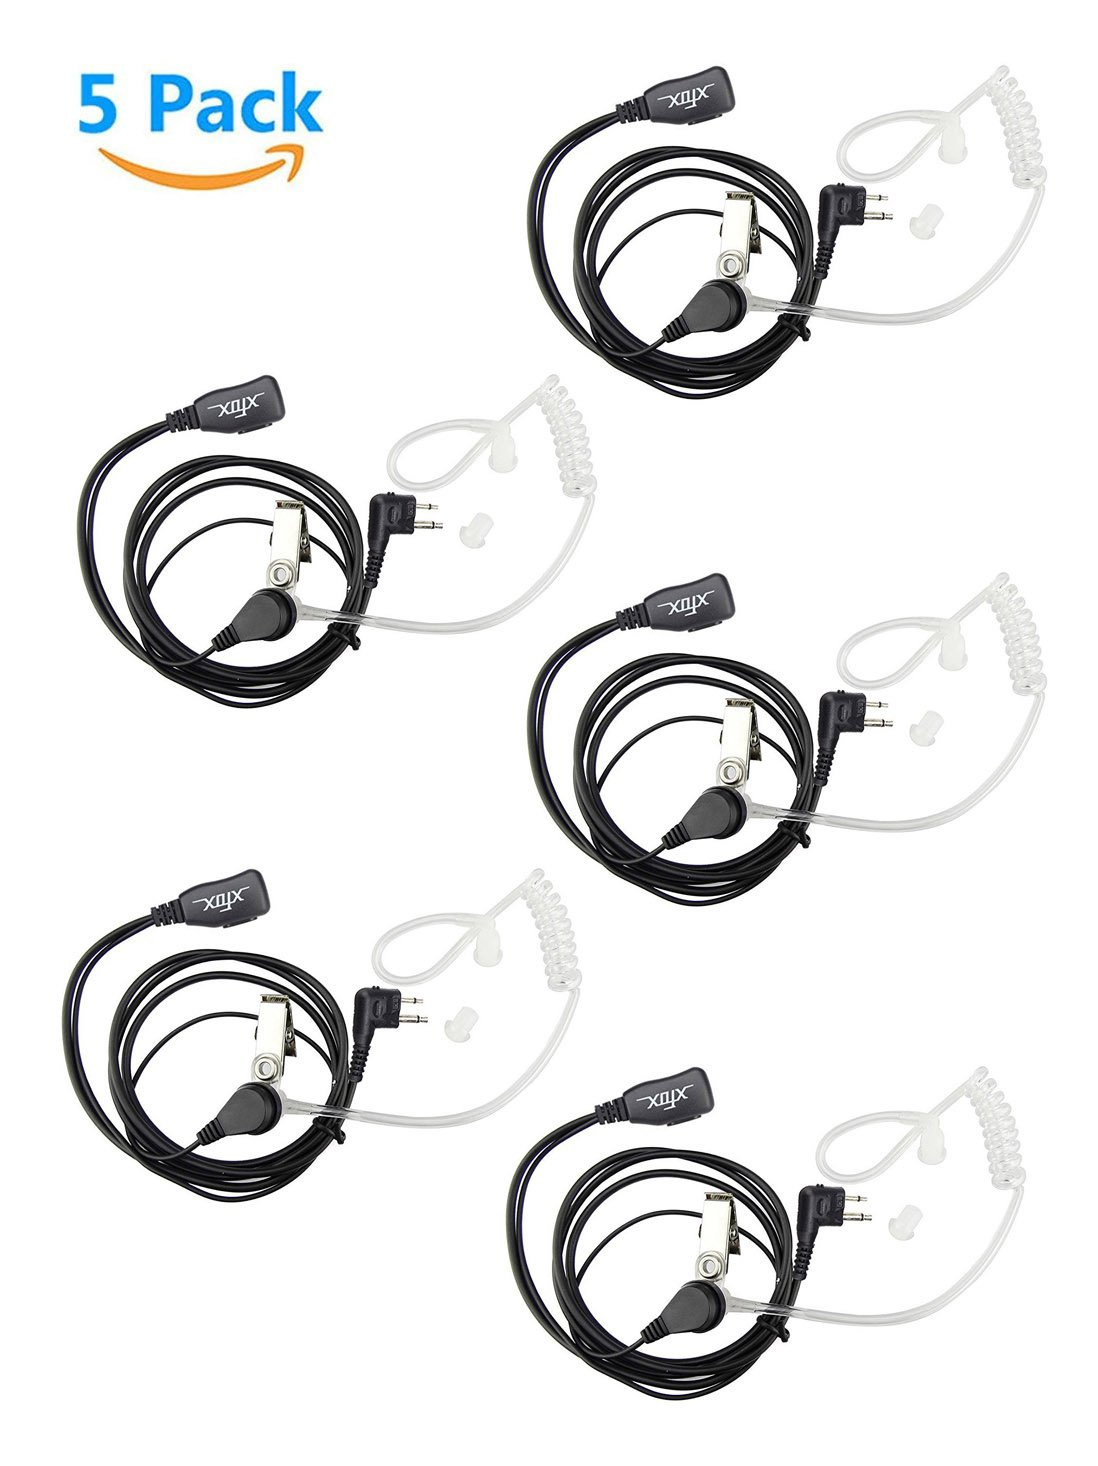 XFox 5Pack FBI Style 2Pin Covert Acoustic Tube Earpiece PTT Headset Compatible with Motorola 2 Ways Radio GP88S GP300 GP68 GP2000 GP88 GP3188 CP040 CP1200 A8 A6 A10 A12 etc by XFOX